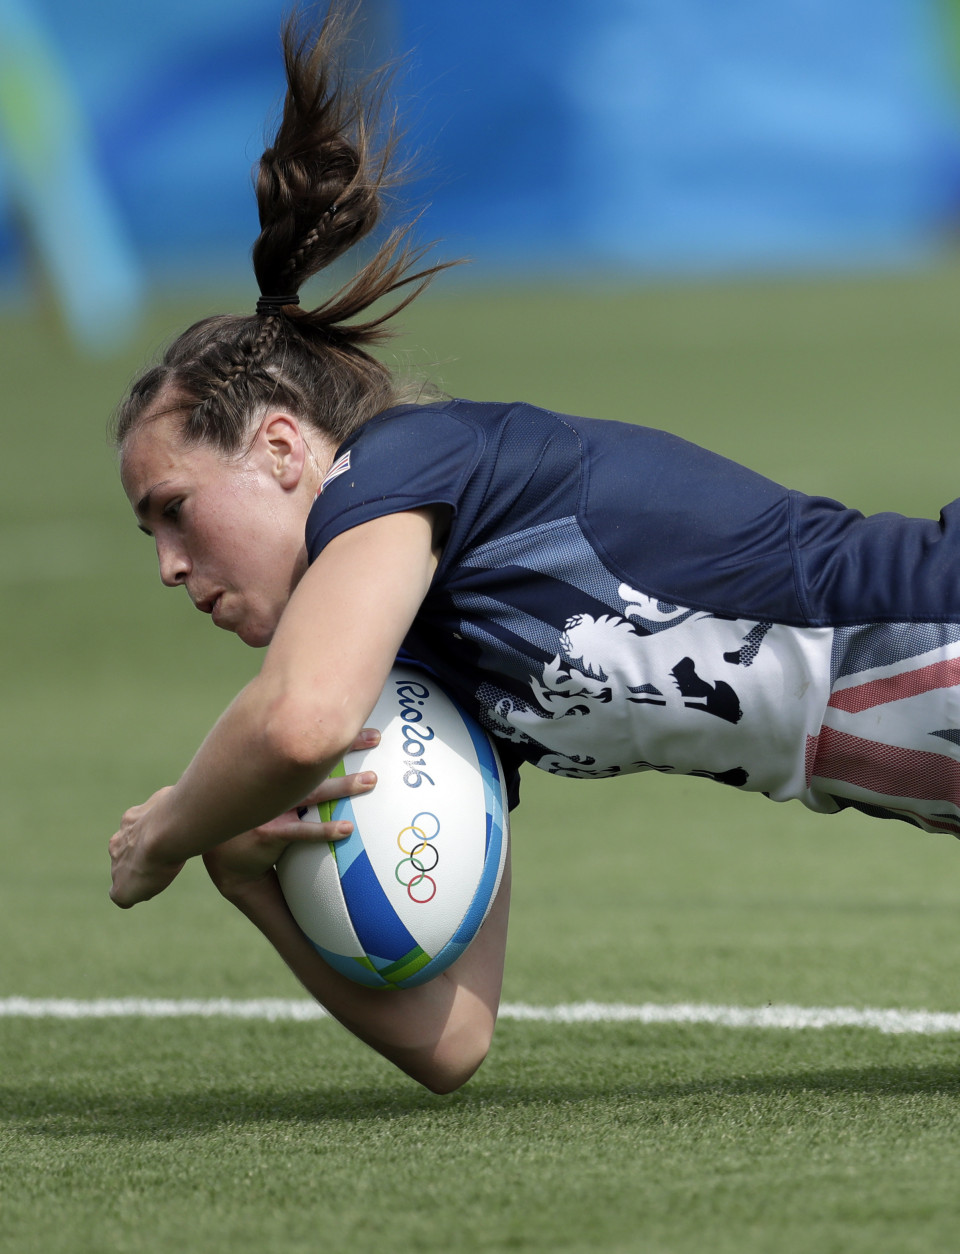 Great Britain's Emily Scarratt, scores a try during the women's rugby sevens match against Canada at the Summer Olympics in Rio de Janeiro, Brazil, Sunday, Aug. 7, 2016. (AP Photo/Themba Hadebe)